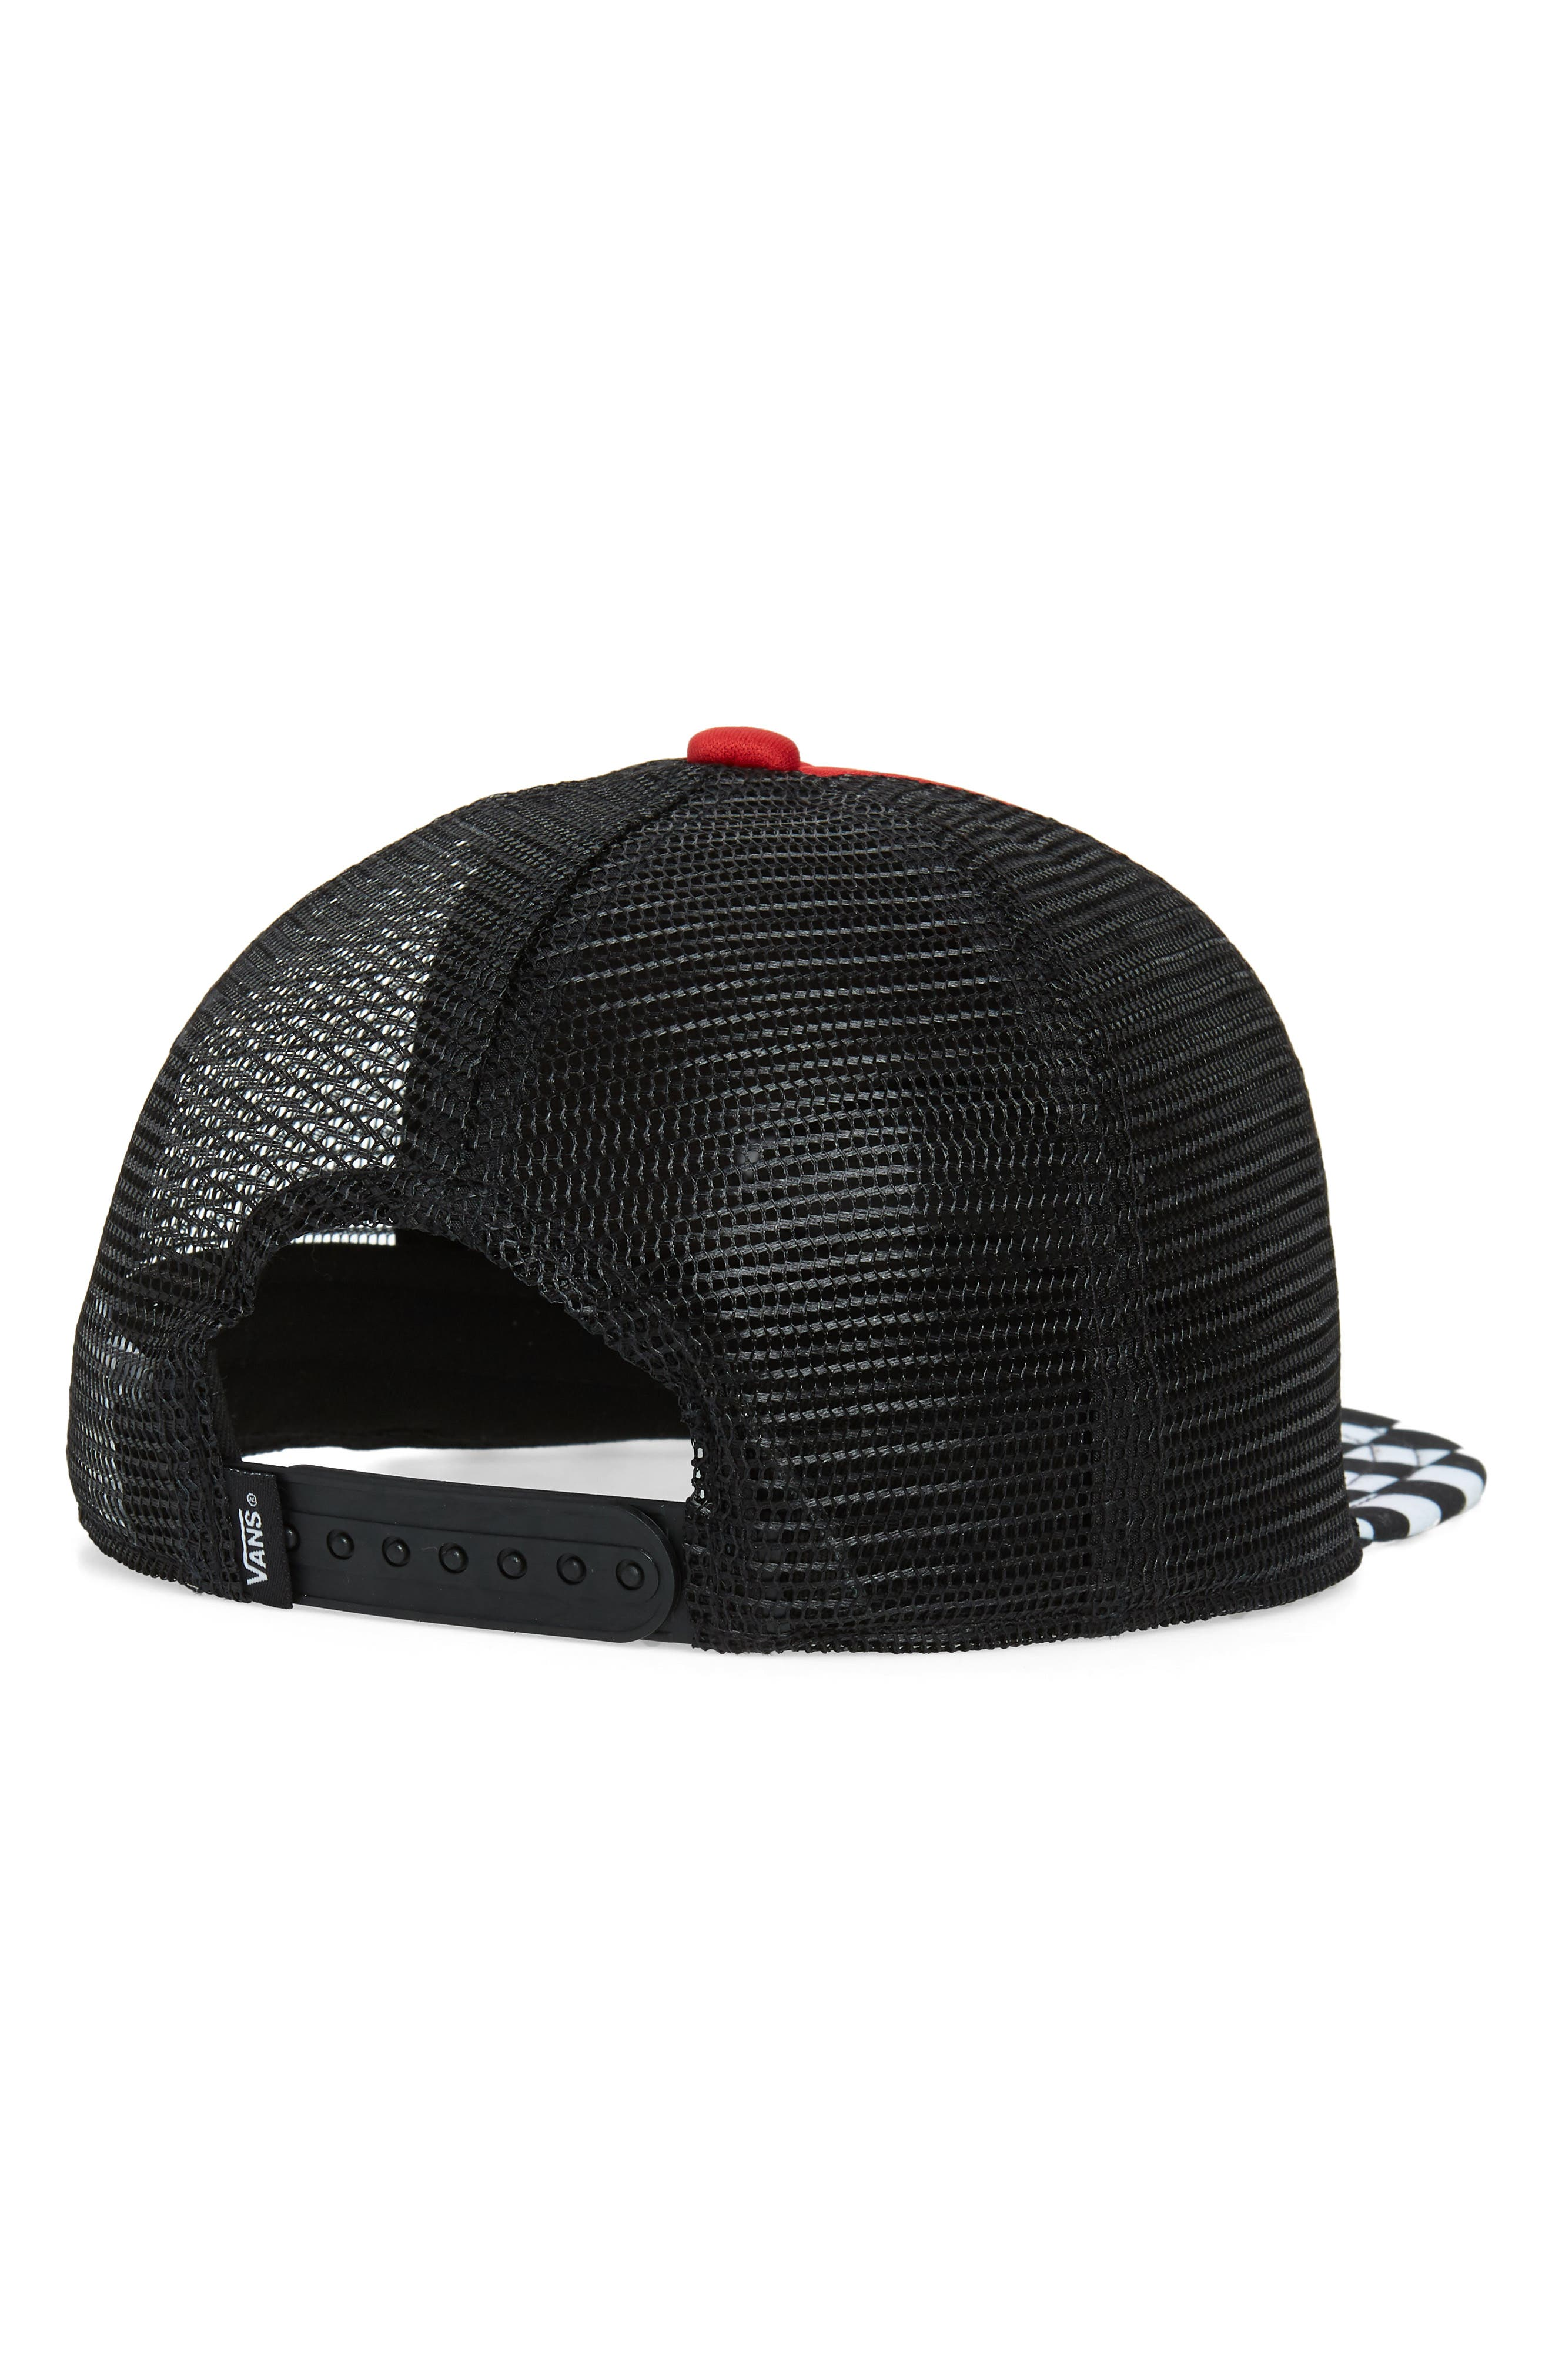 VANS, Classic Patch Trucker Hat, Alternate thumbnail 2, color, RACING RED